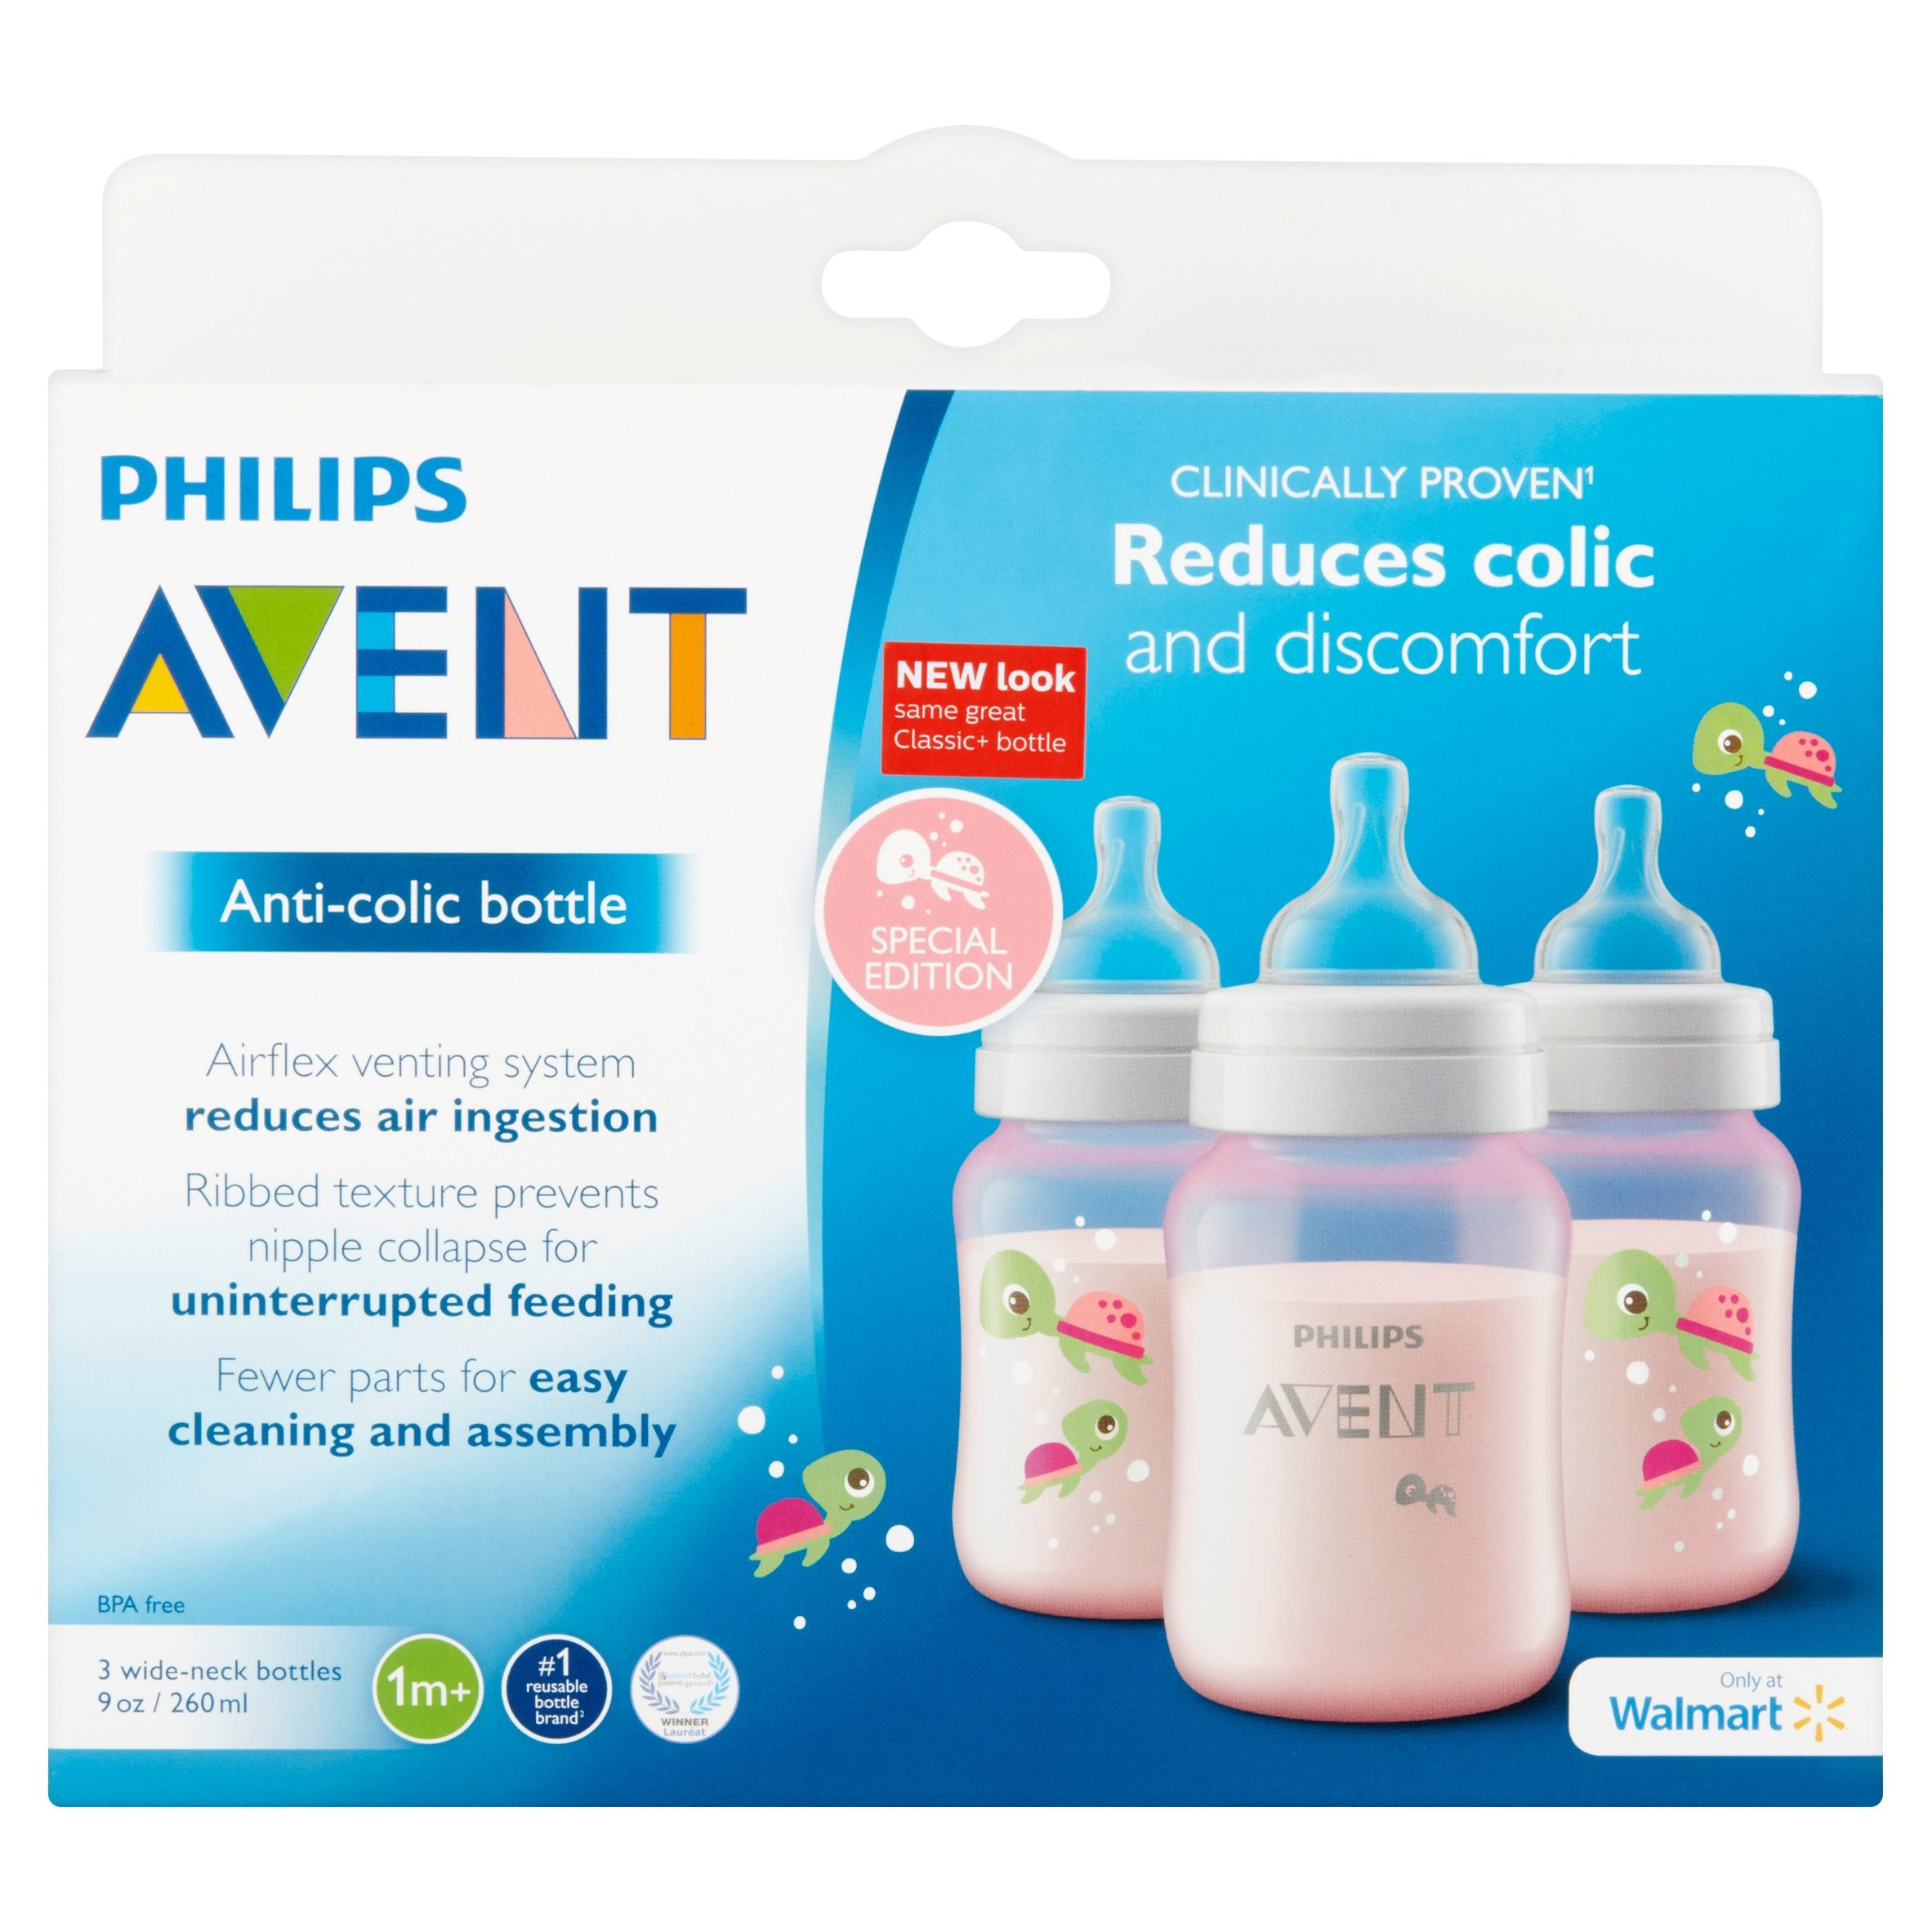 Philips Avent 9 oz Anti-Colic Wide-Neck Bottles 1m+, 3 Count